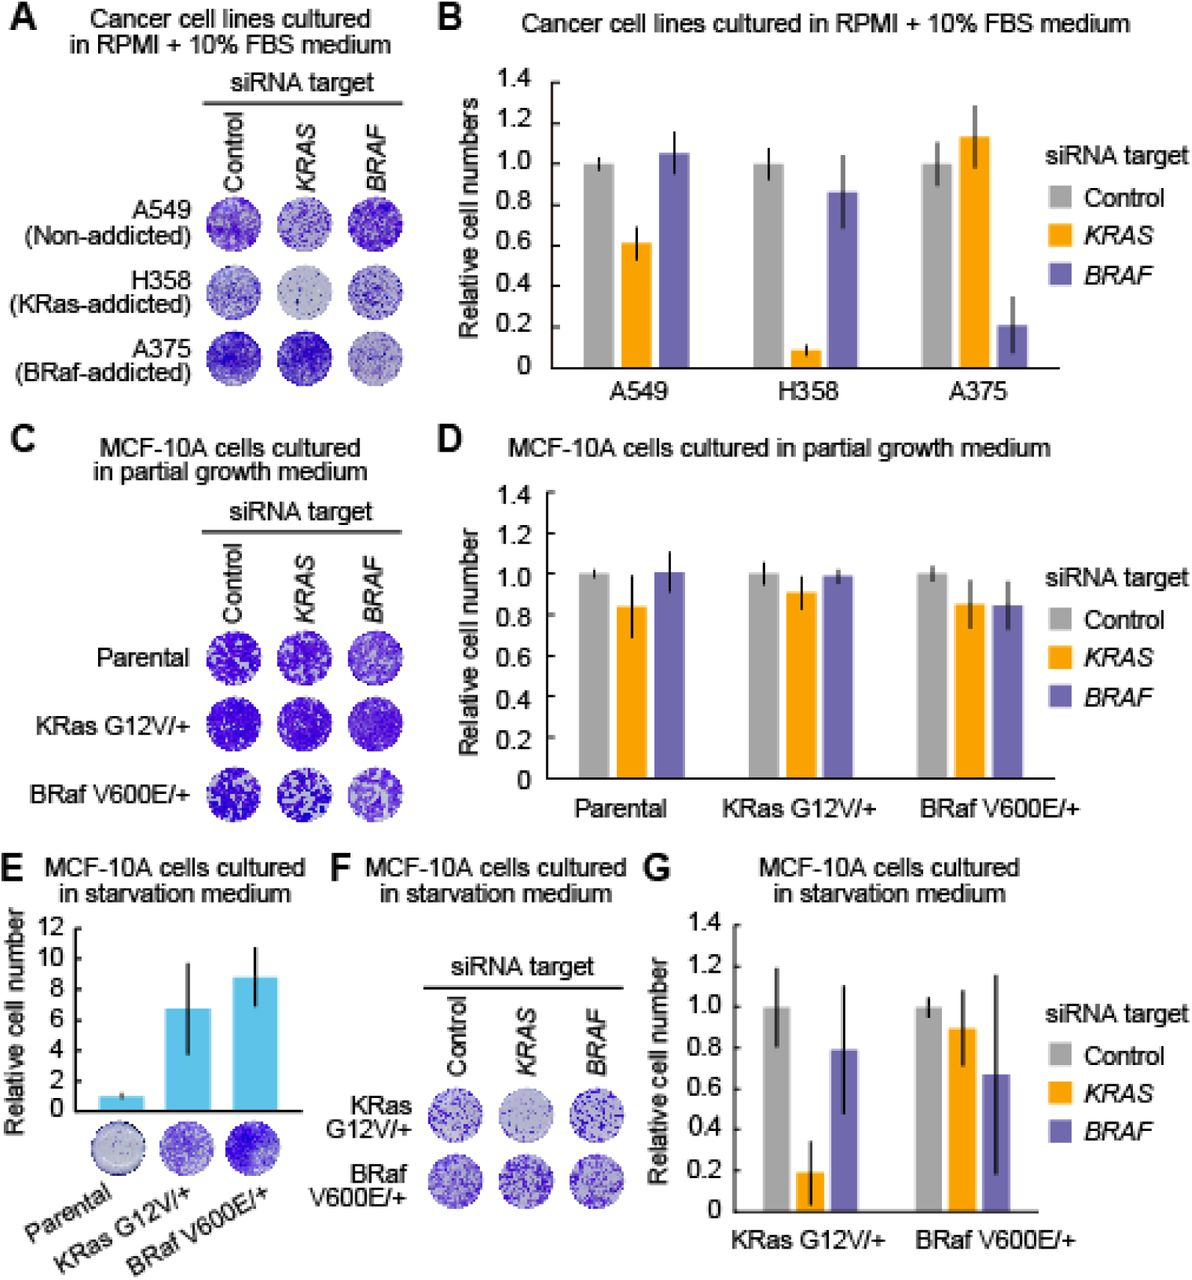 Evaluation of oncogenic KRAS or BRAF addiction in MCF-10A cells harboring a single allele mutation of KRAS G12V or BRAF V600E. (A and B) Cell growth assays following siRNA-mediated negative control, KRAS, or BRAF ablation in the A549, H358, and A375 cell lines. Four days after transfection with siRNA, relative cell densities were determined by crystal violet staining. Representative 96-well plates are shown (A). The mean relative cell number is shown with the SD (n = 2) (B). (C and D) Cell growth assays following siRNA-mediated negative control, KRAS, or BRAF ablation in the parental MCF-10A, KRAS G12V/+, and BRAF V600E/+ cell lines grown in the partial growth medium. Three days after transfection with siRNA, relative cell densities were determined by crystal violet staining. Representative 96-well plates are shown (C). The mean relative cell number is shown with the SD (Parental, n = 4; KRAS G12V/+, n = 4; BRAF V600E/+, n=3) (D). (E) Cell growth assays in the parental MCF-10A, KRAS G12V/+, and BRAF V600E/+ cell lines grown in starvation medium for four days with the indicated siRNA. Relative cell densities were determined by crystal violet staining. Representative 96-well plates are shown (lower). Mean relative cell numbers are shown with the SD (Parental, n = 3; KRAS G12V/+, n = 9; BRAF V600E/+, n=8) (upper). (F and G) Cell growth assays following siRNA-mediated negative control, KRAS, or BRAF ablation in the KRAS G12V/+ and BRAF V600E/+ cell lines grown in starvation medium. Four days after transfection with siRNA, relative cell densities were determined by crystal violet staining. Representative 96-well plates are shown (F). The mean relative cell number is shown with the SD (n = 8) (G).